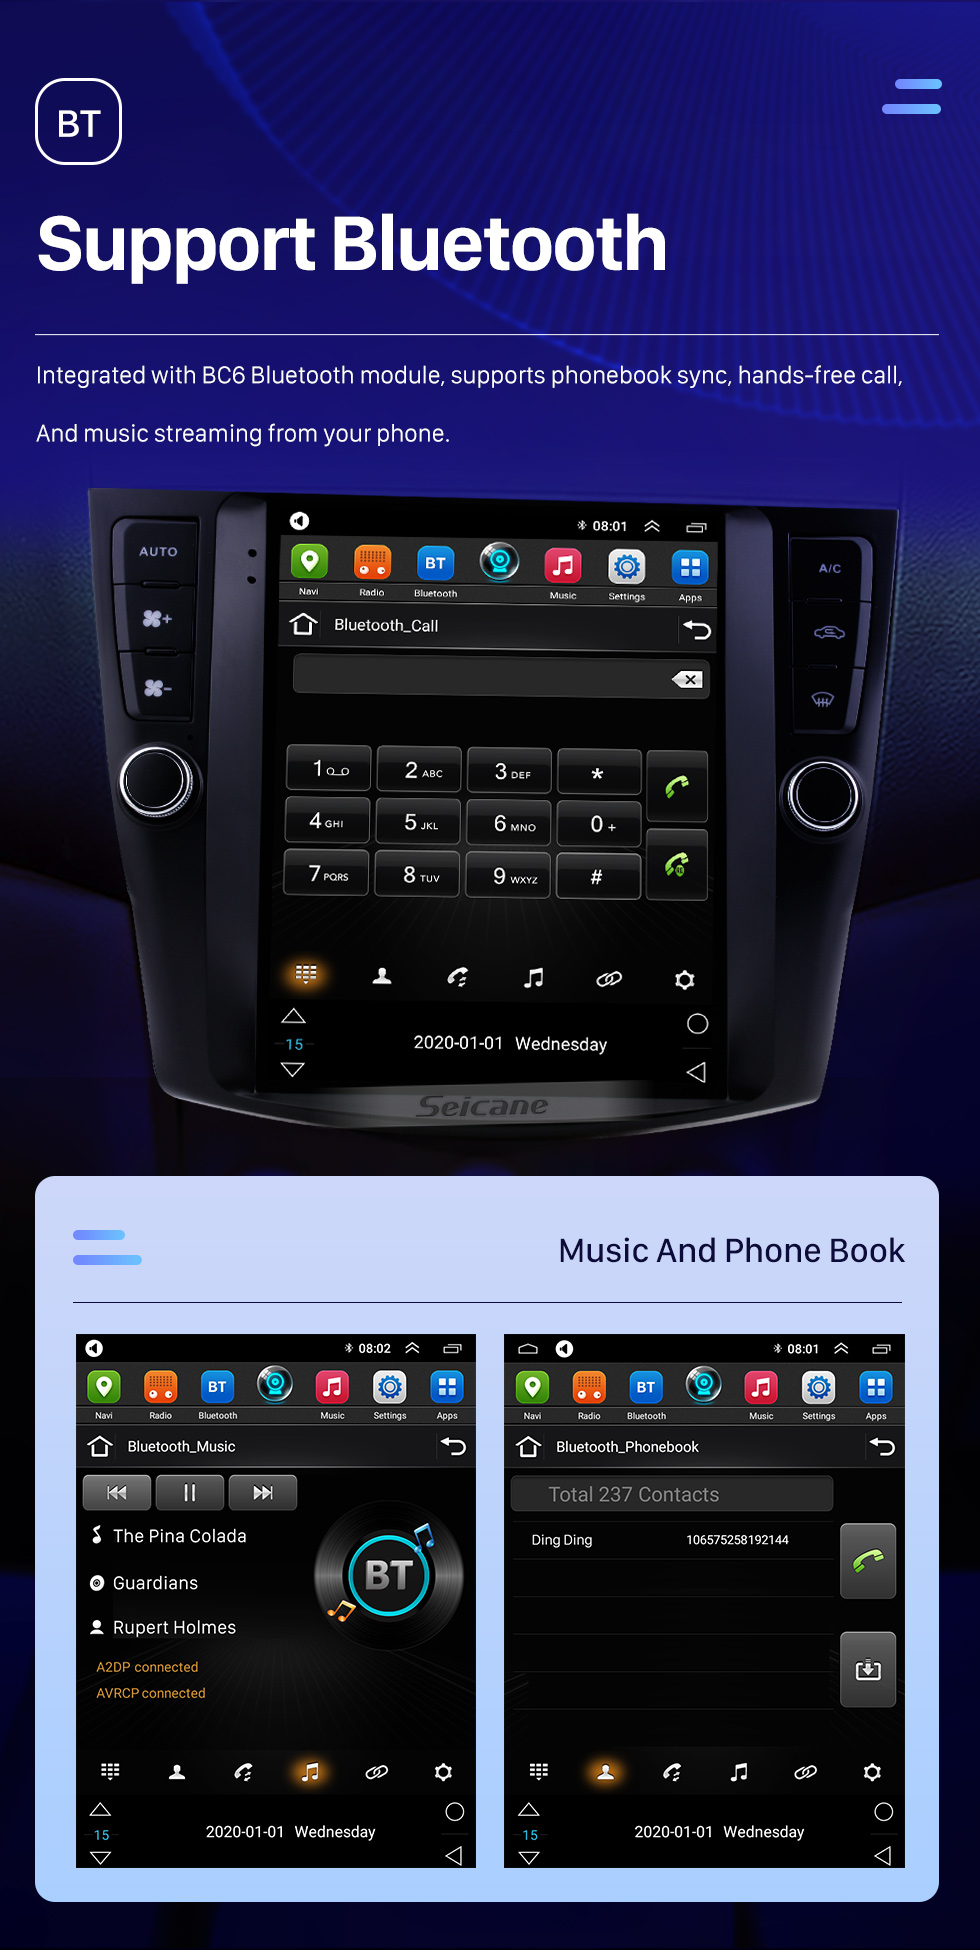 Seicane HD Touchscreen 9.7 inch Android 10.0 Aftermarket GPS Navigation Radio for 2003-2007 Honda Accord 7 with Bluetooth Phone AUX FM Steering Wheel Control support DVD 1080P Video OBD2